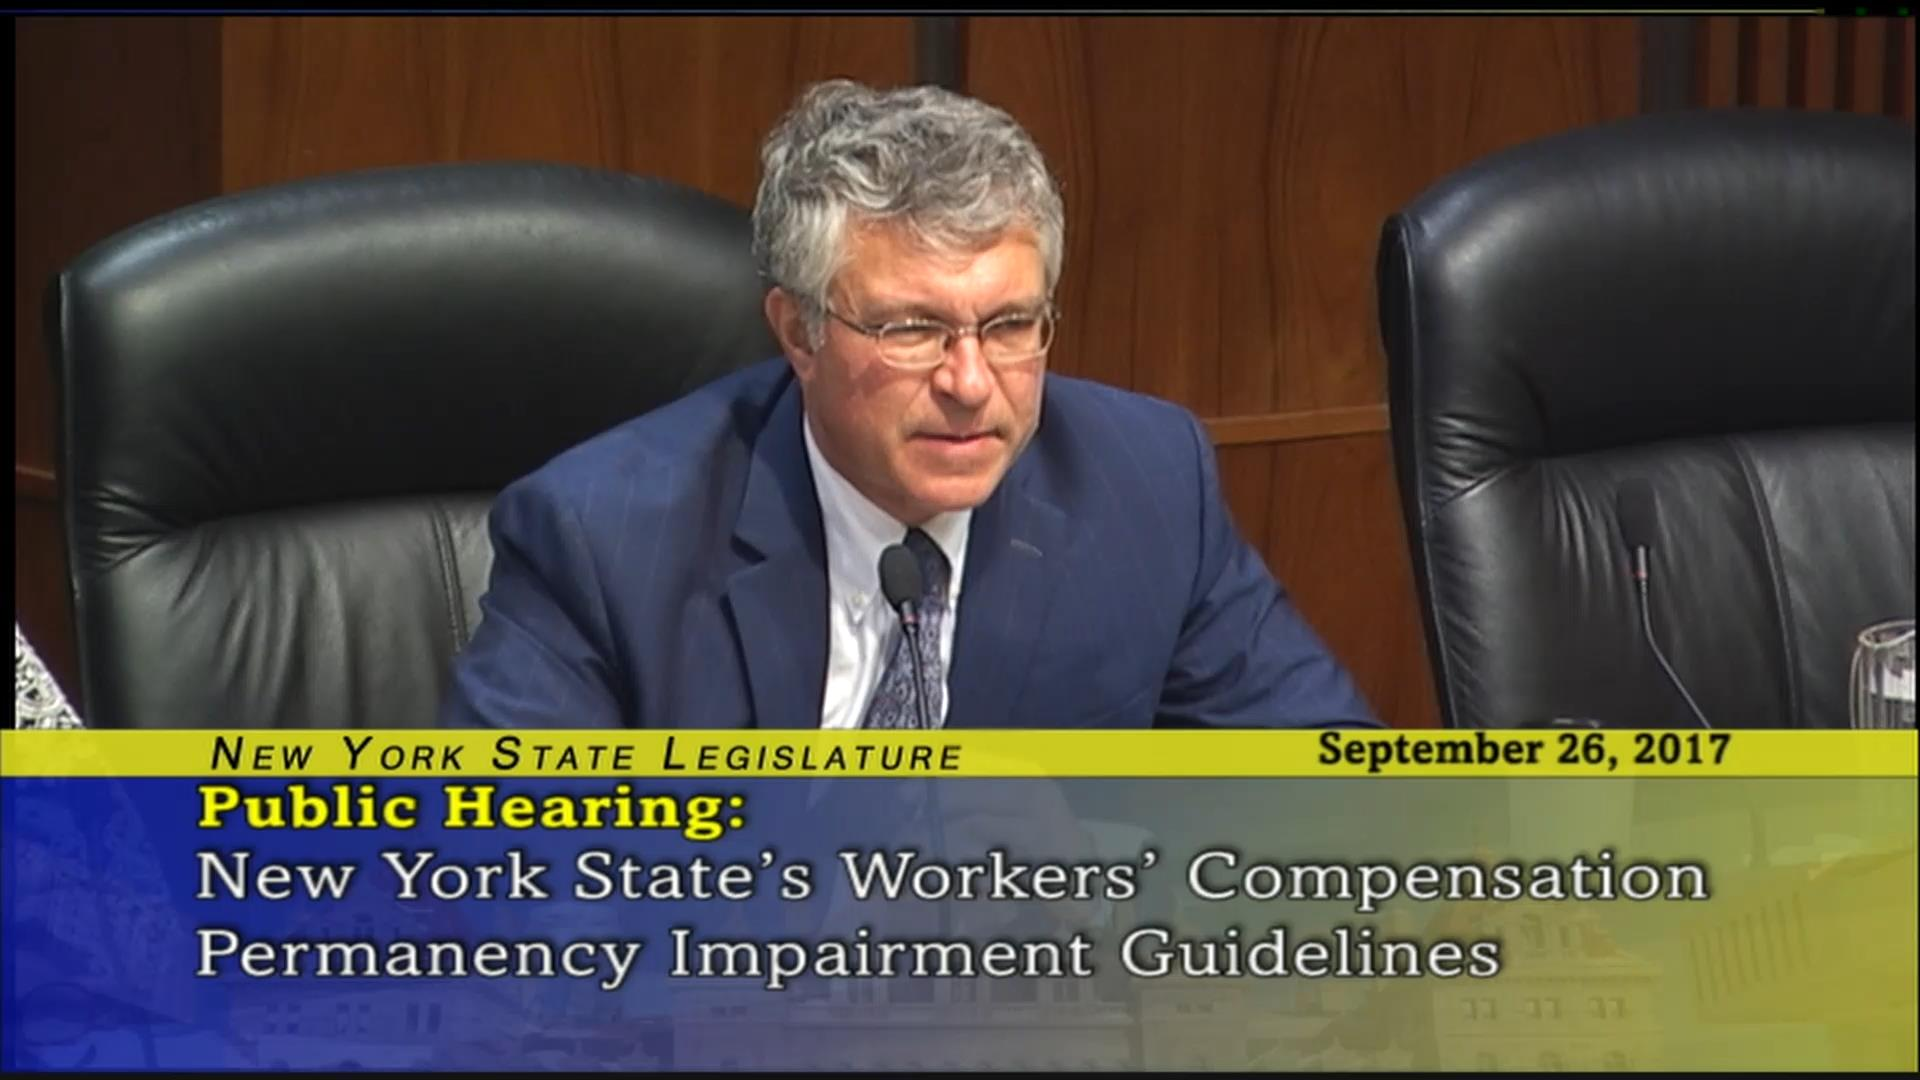 New York State's Workers' Compensation Permanency Impairment Guidelines